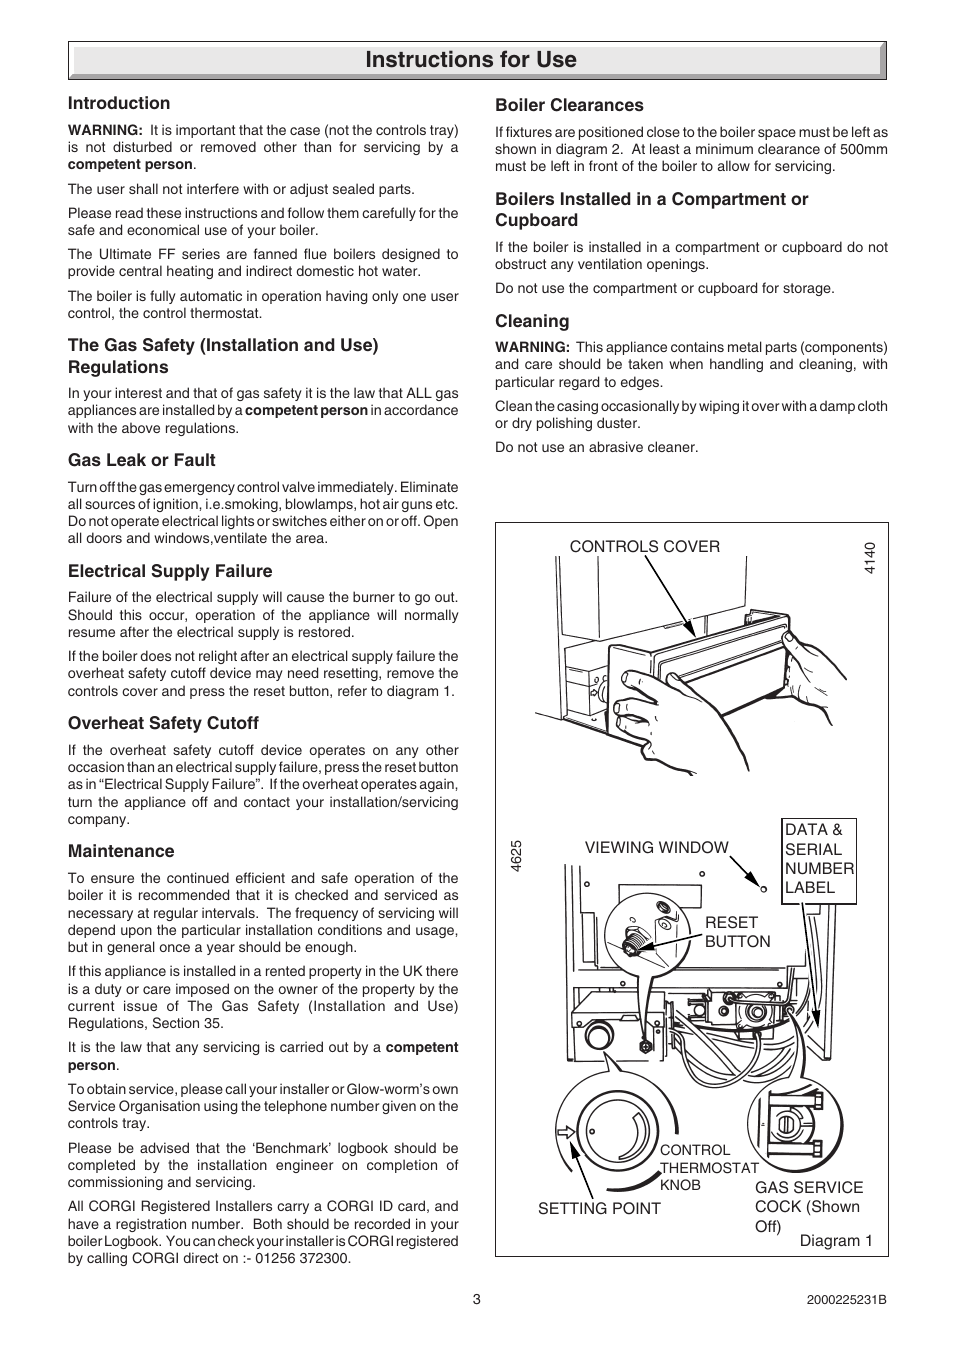 Instructions for use | Glow-worm Ultimate 40FF User Manual | Page 3 ...